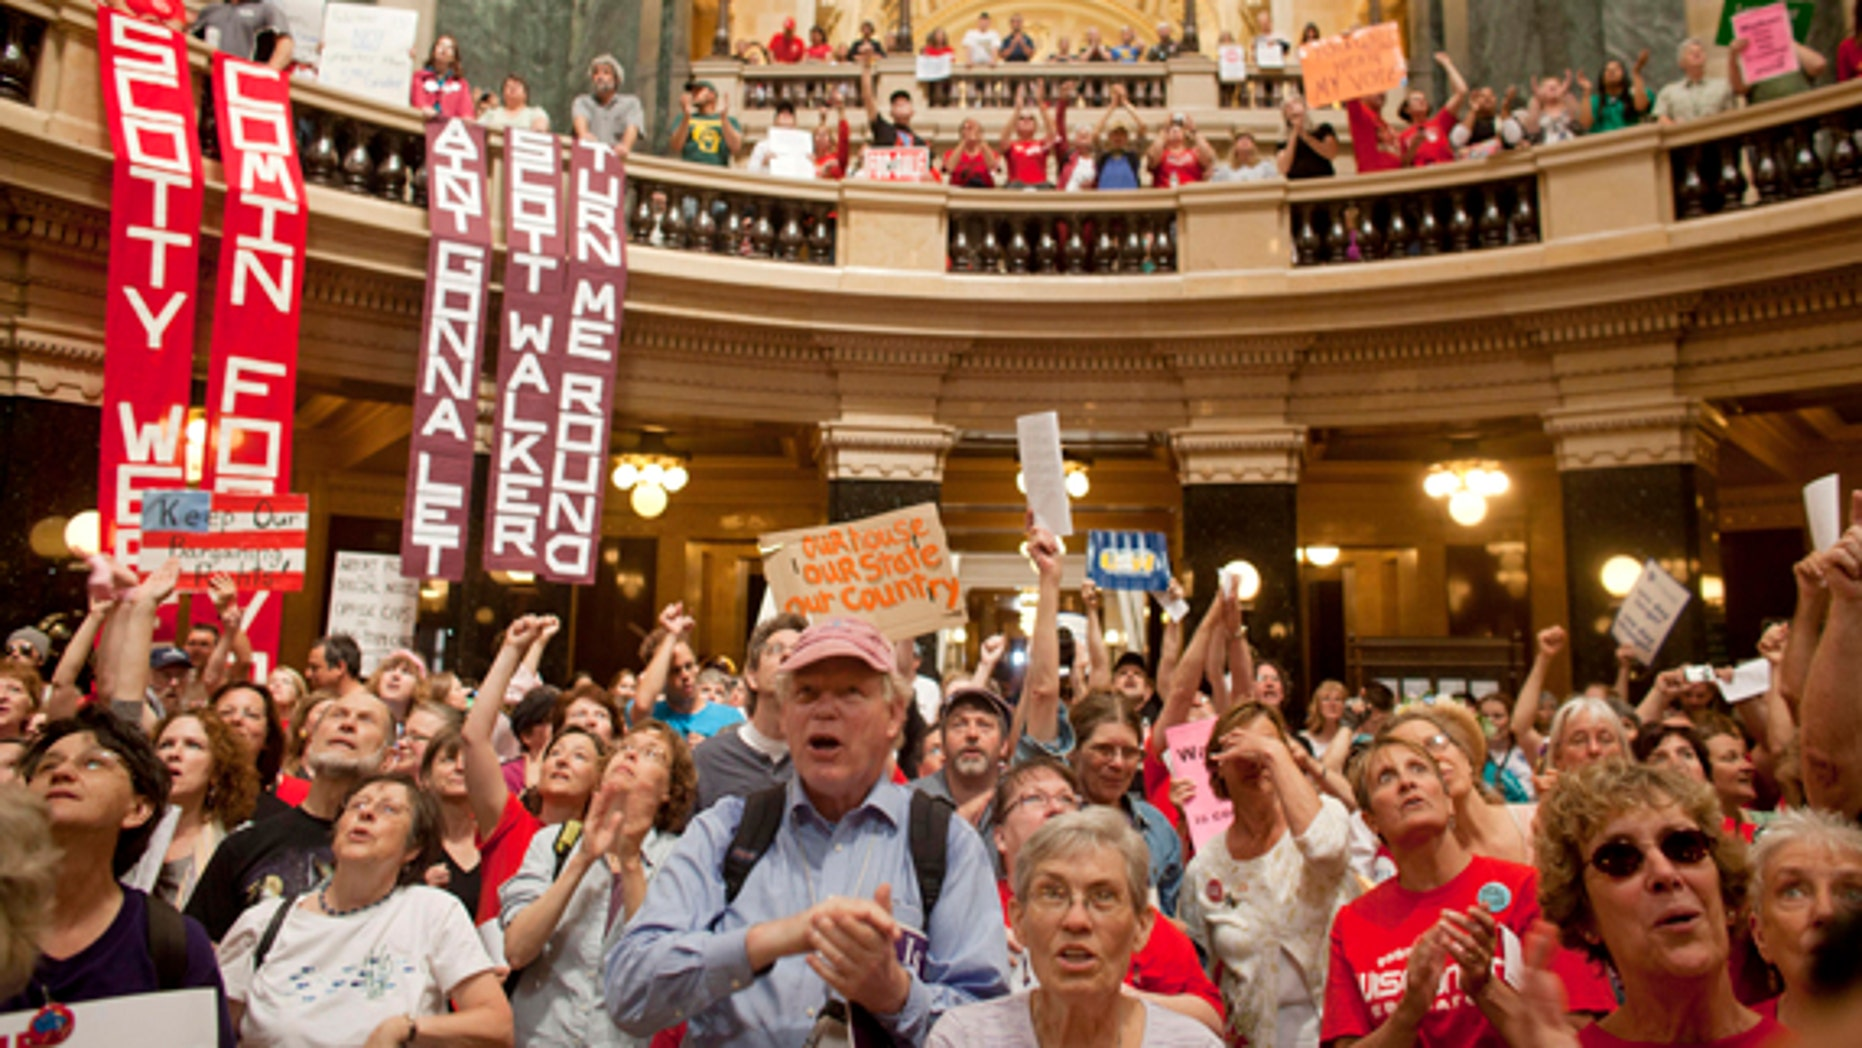 FILE: June 14, 2011: Protesters, including supporters of public employee unions, at the State Capitol Building, in Milwaukee, Wisc.